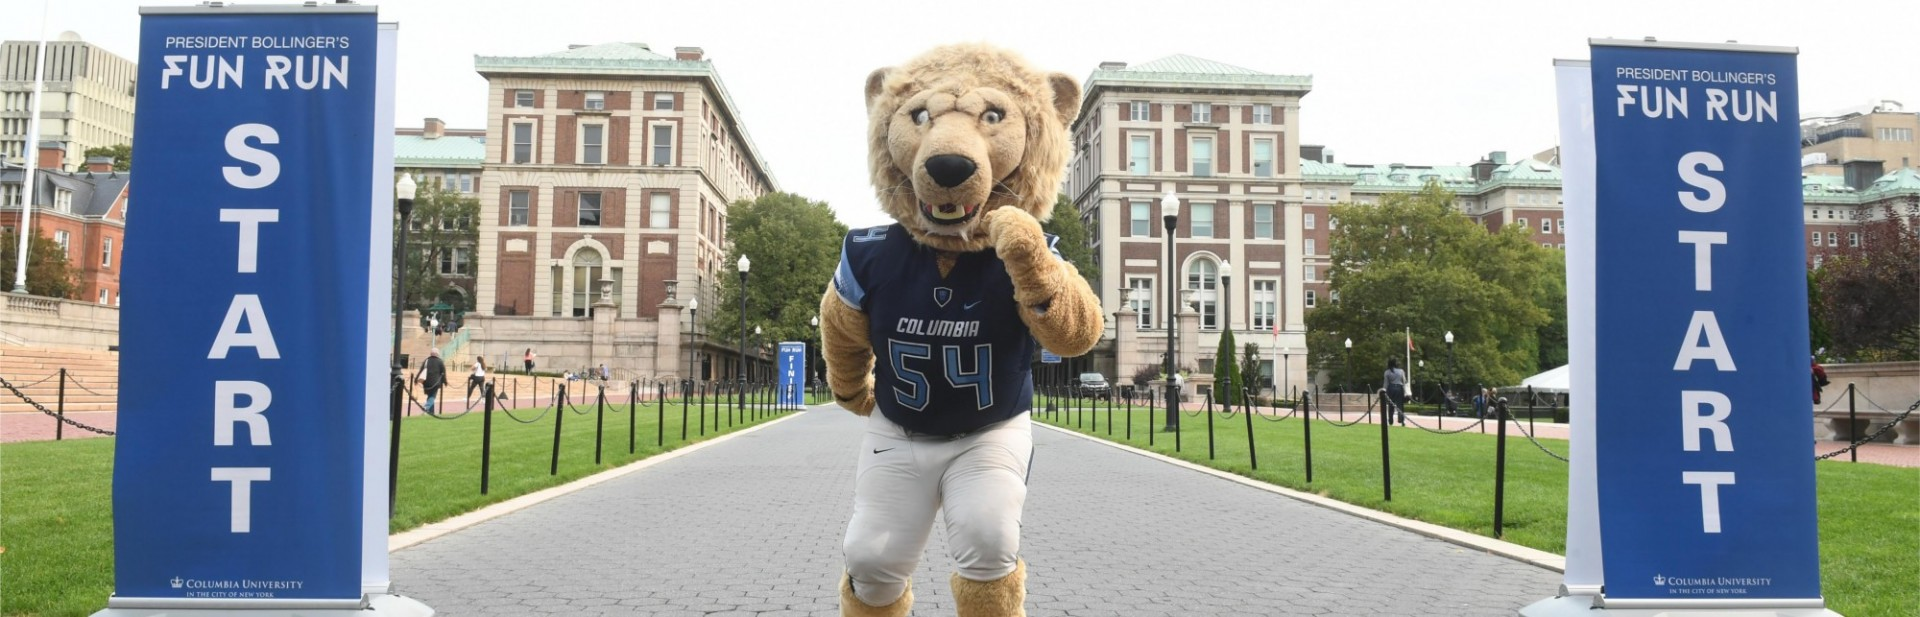 Roar-EE, Columbia University's mascot, at the start of President Bollinger's 19th Annual Fun Run